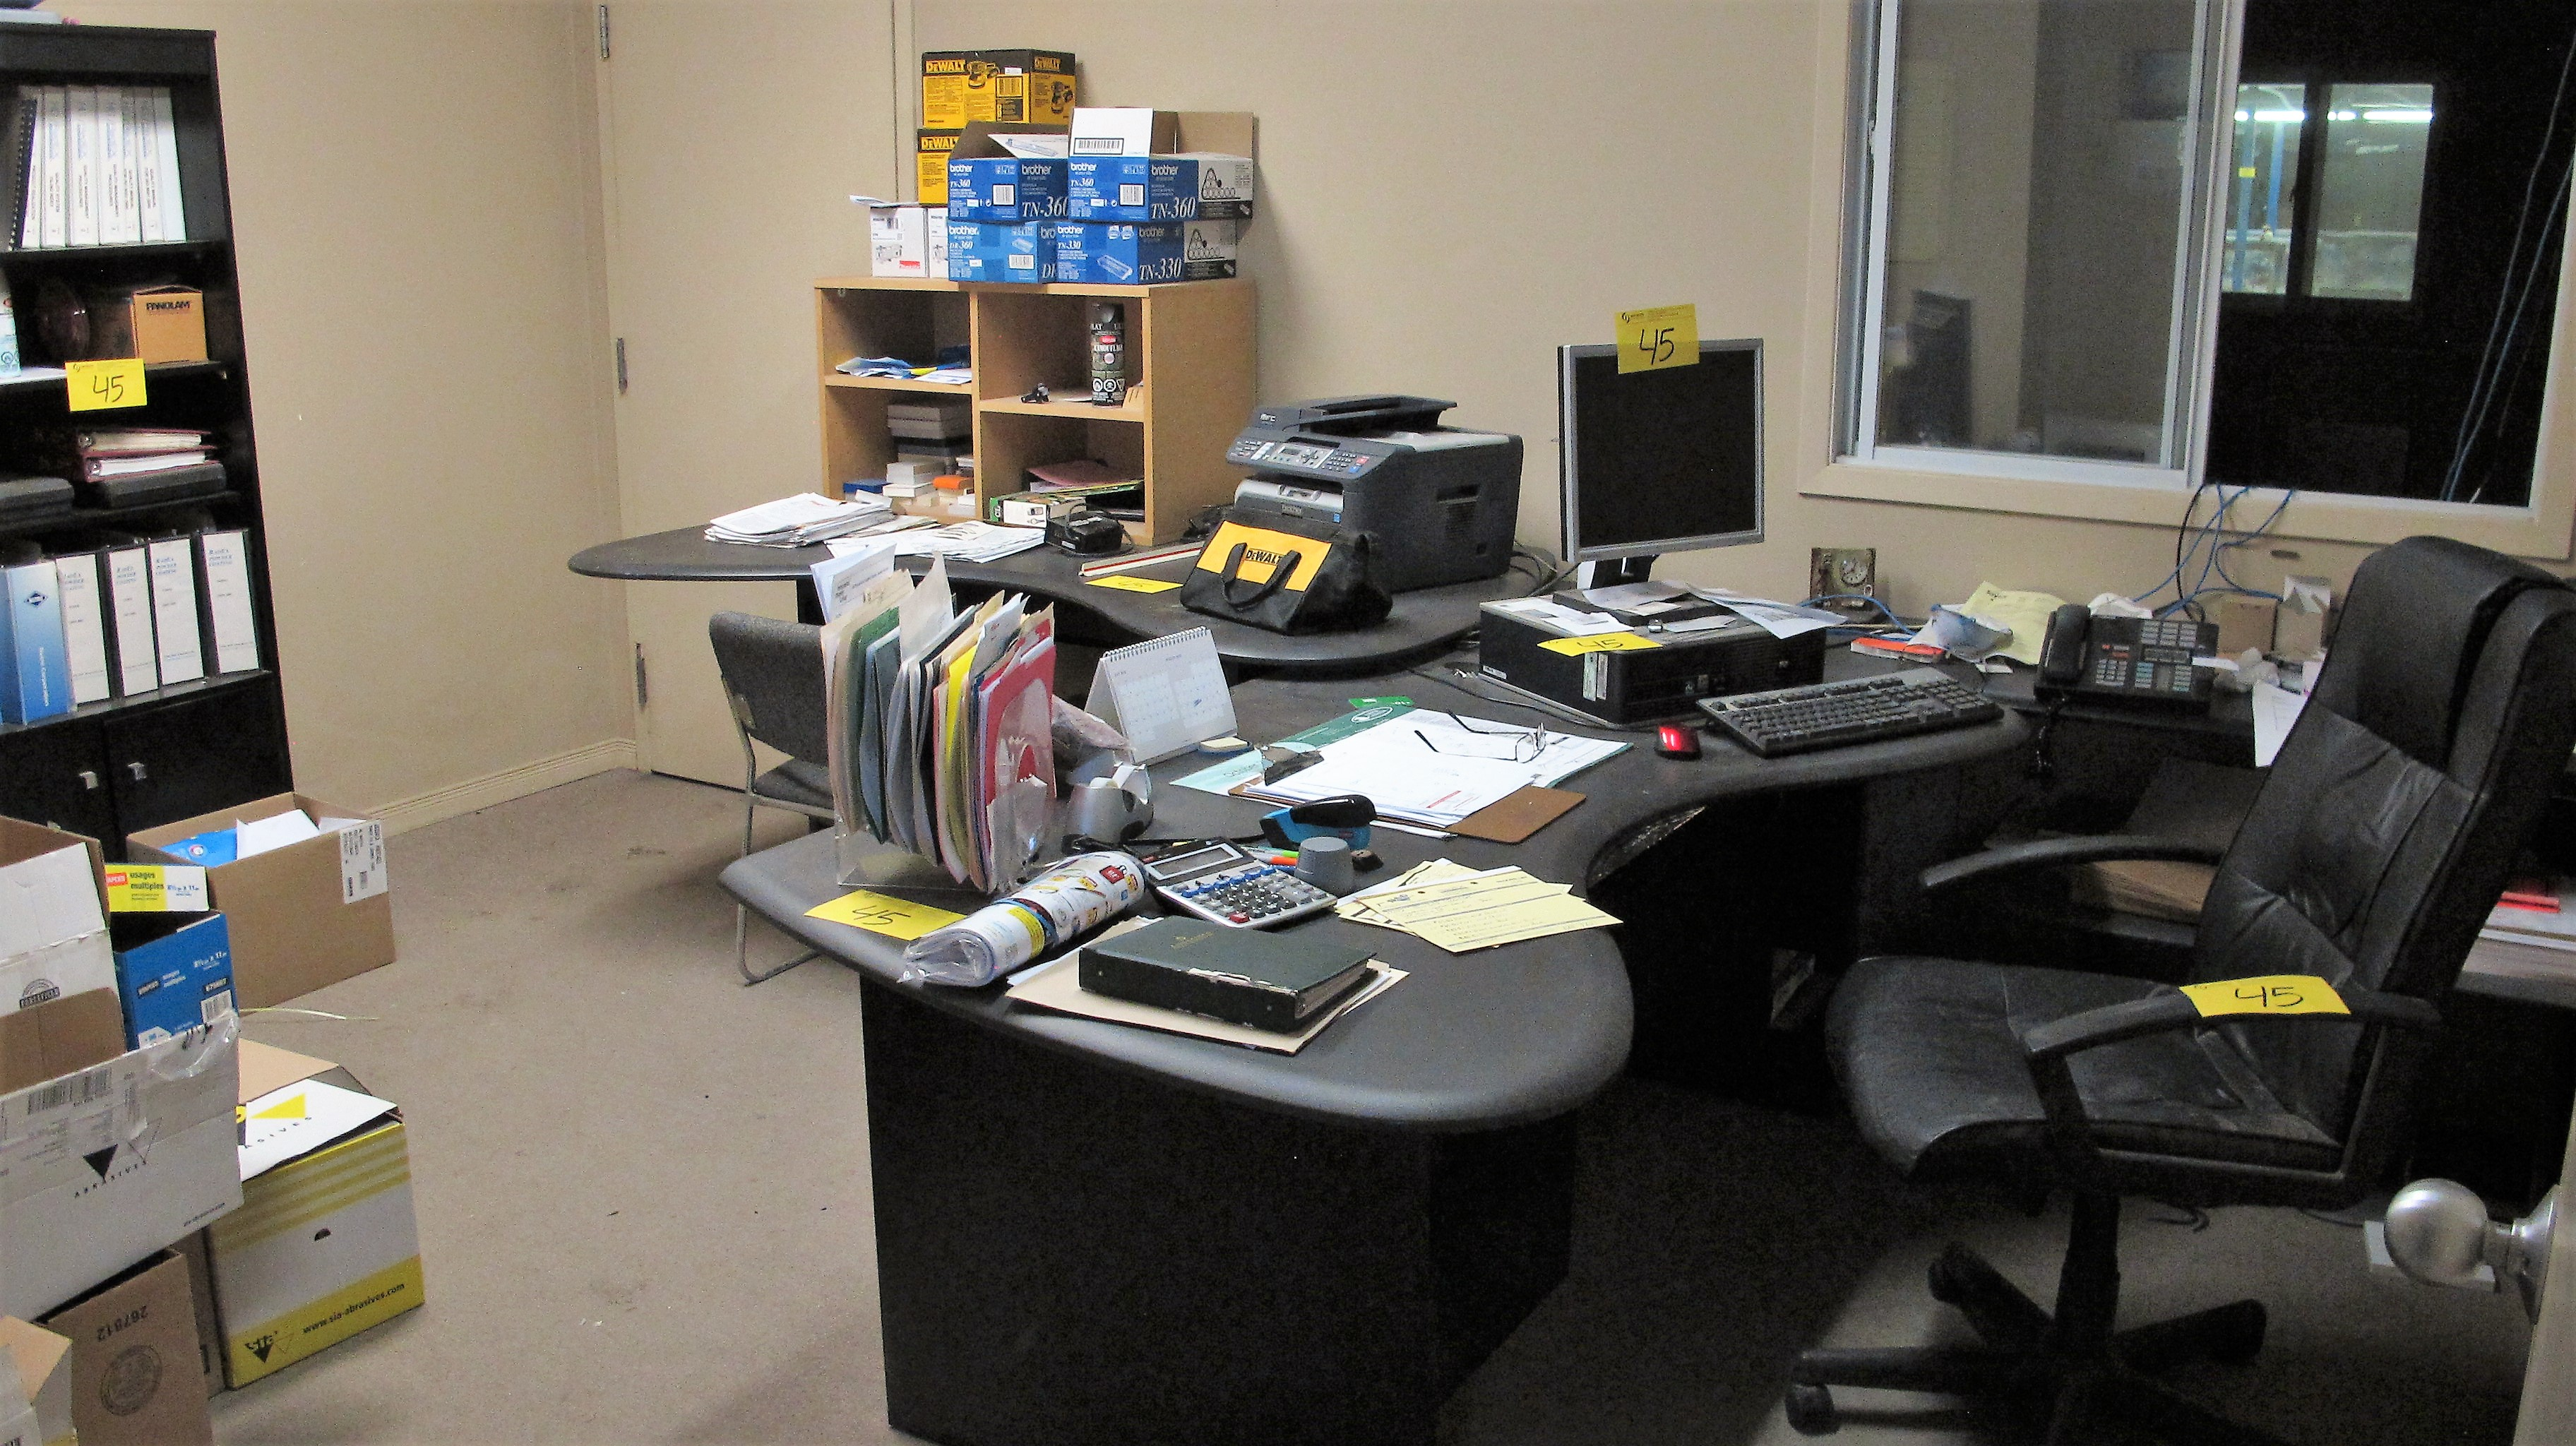 Lot 45 - LOOSE CONTENTS OF OFFICE INCLUDING DESKS, CHAIR, CABINETS, COMPUTER, MONITOR, PRINTER, BAR FRIDGE,